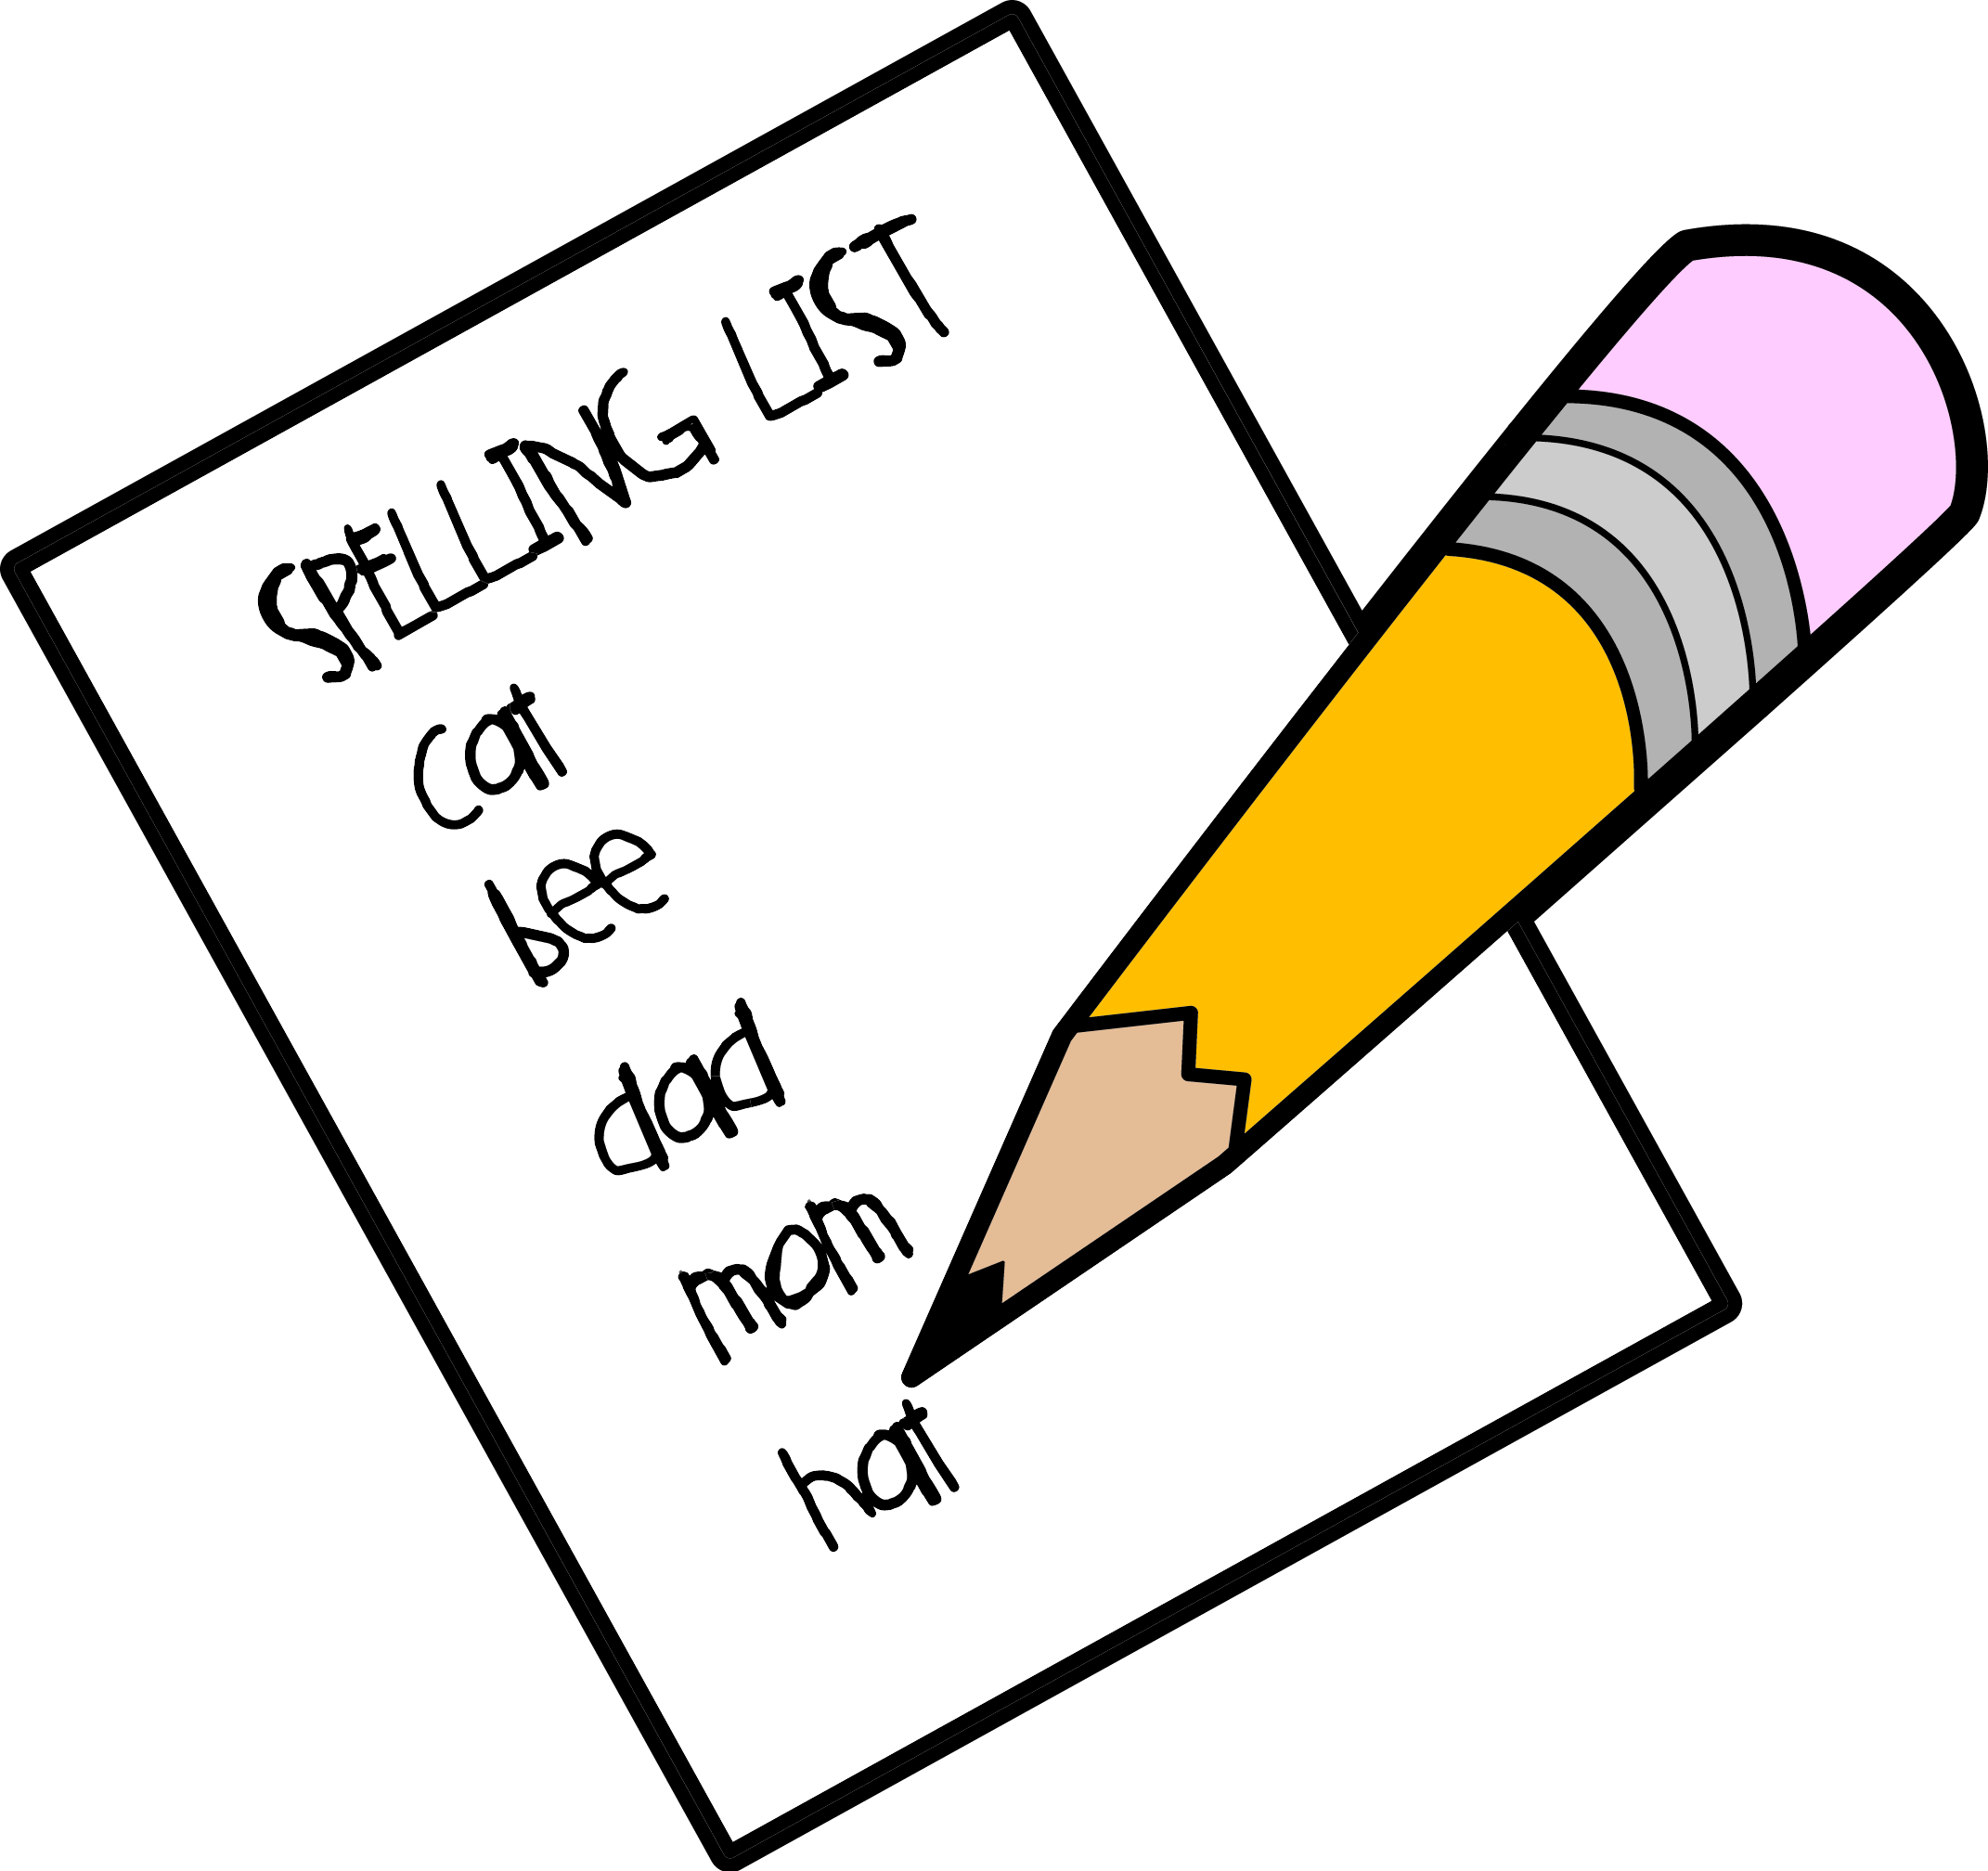 Spelling clipart images.